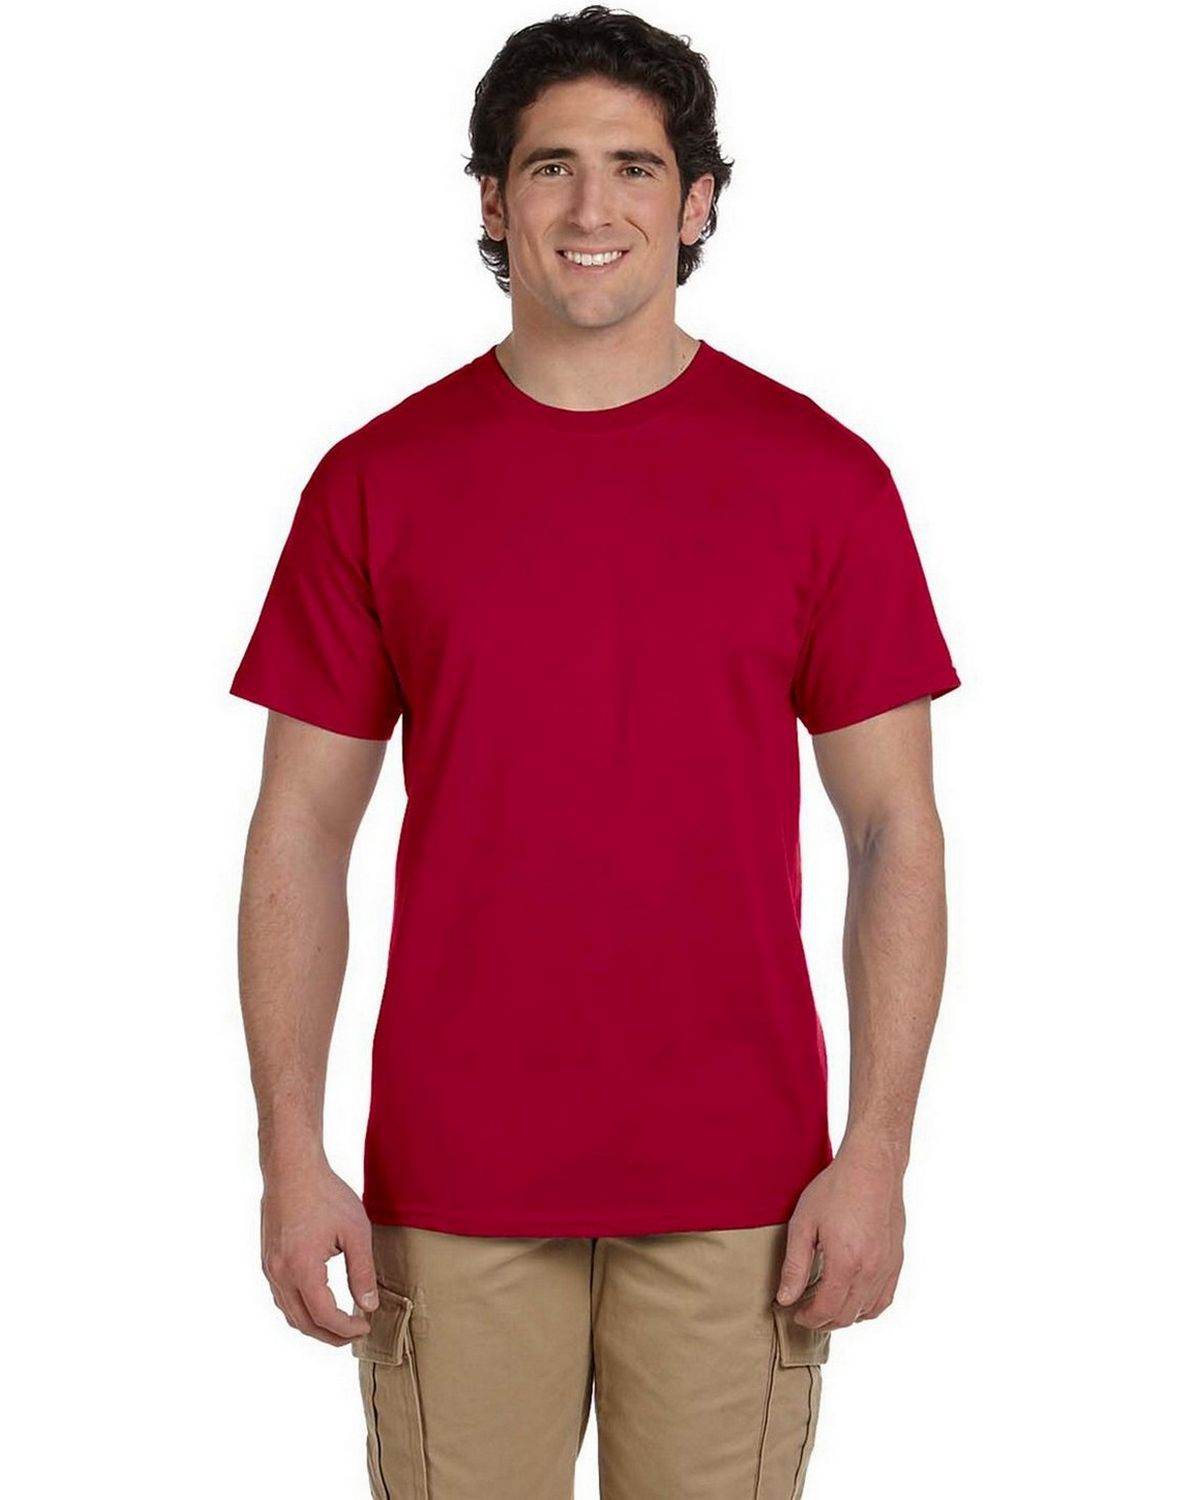 Fruit Of The Loom 3930 Short-Sleeve Tee - Crimson - S 3930